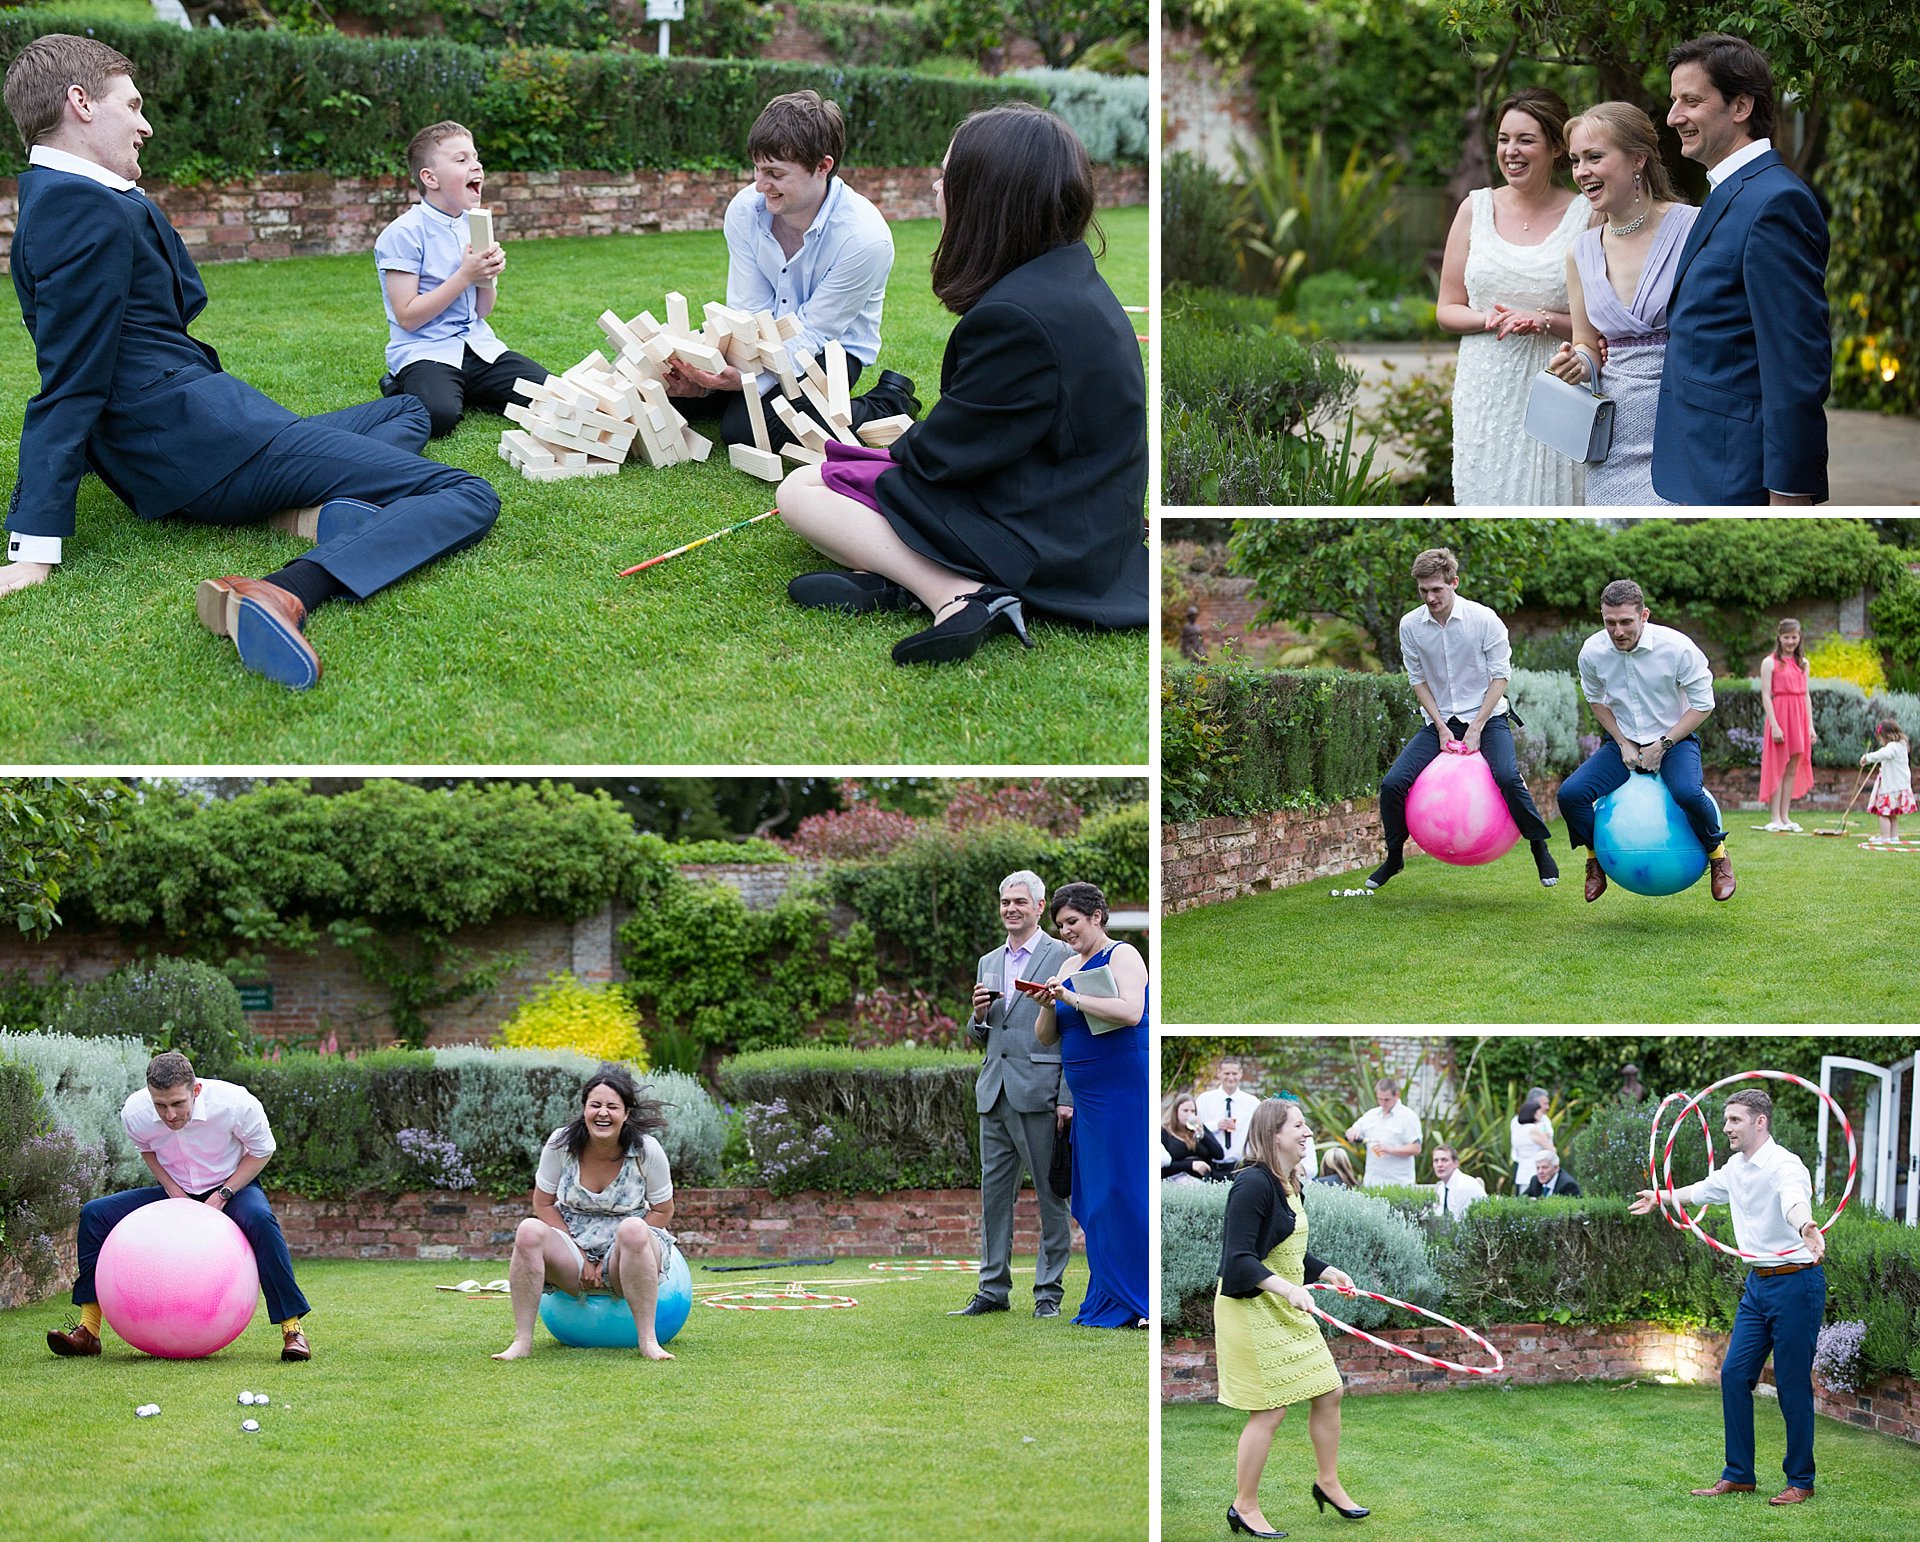 Wedding day fun and games